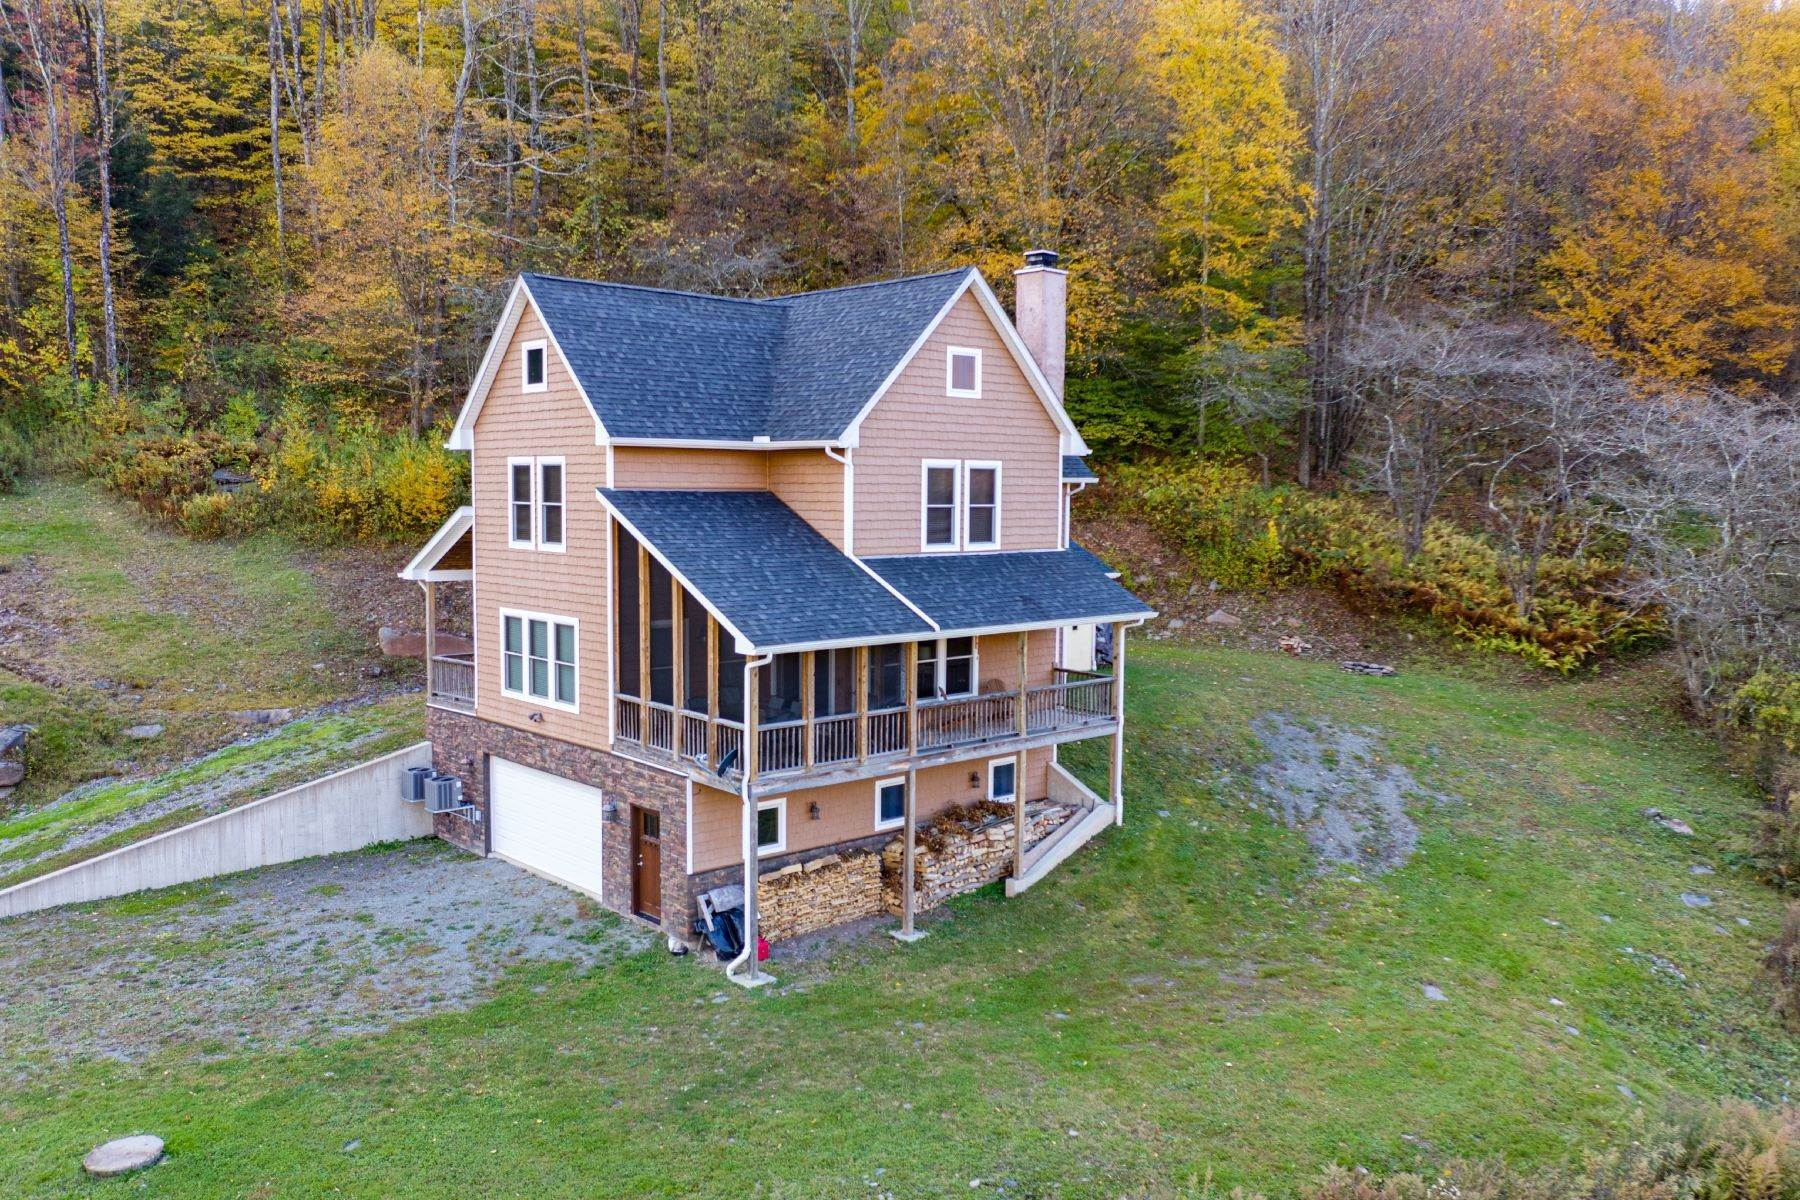 Single Family Homes for Sale at Catskill Mountain Anglers Retreat 2141 Readburn Road Hancock, New York 13783 United States